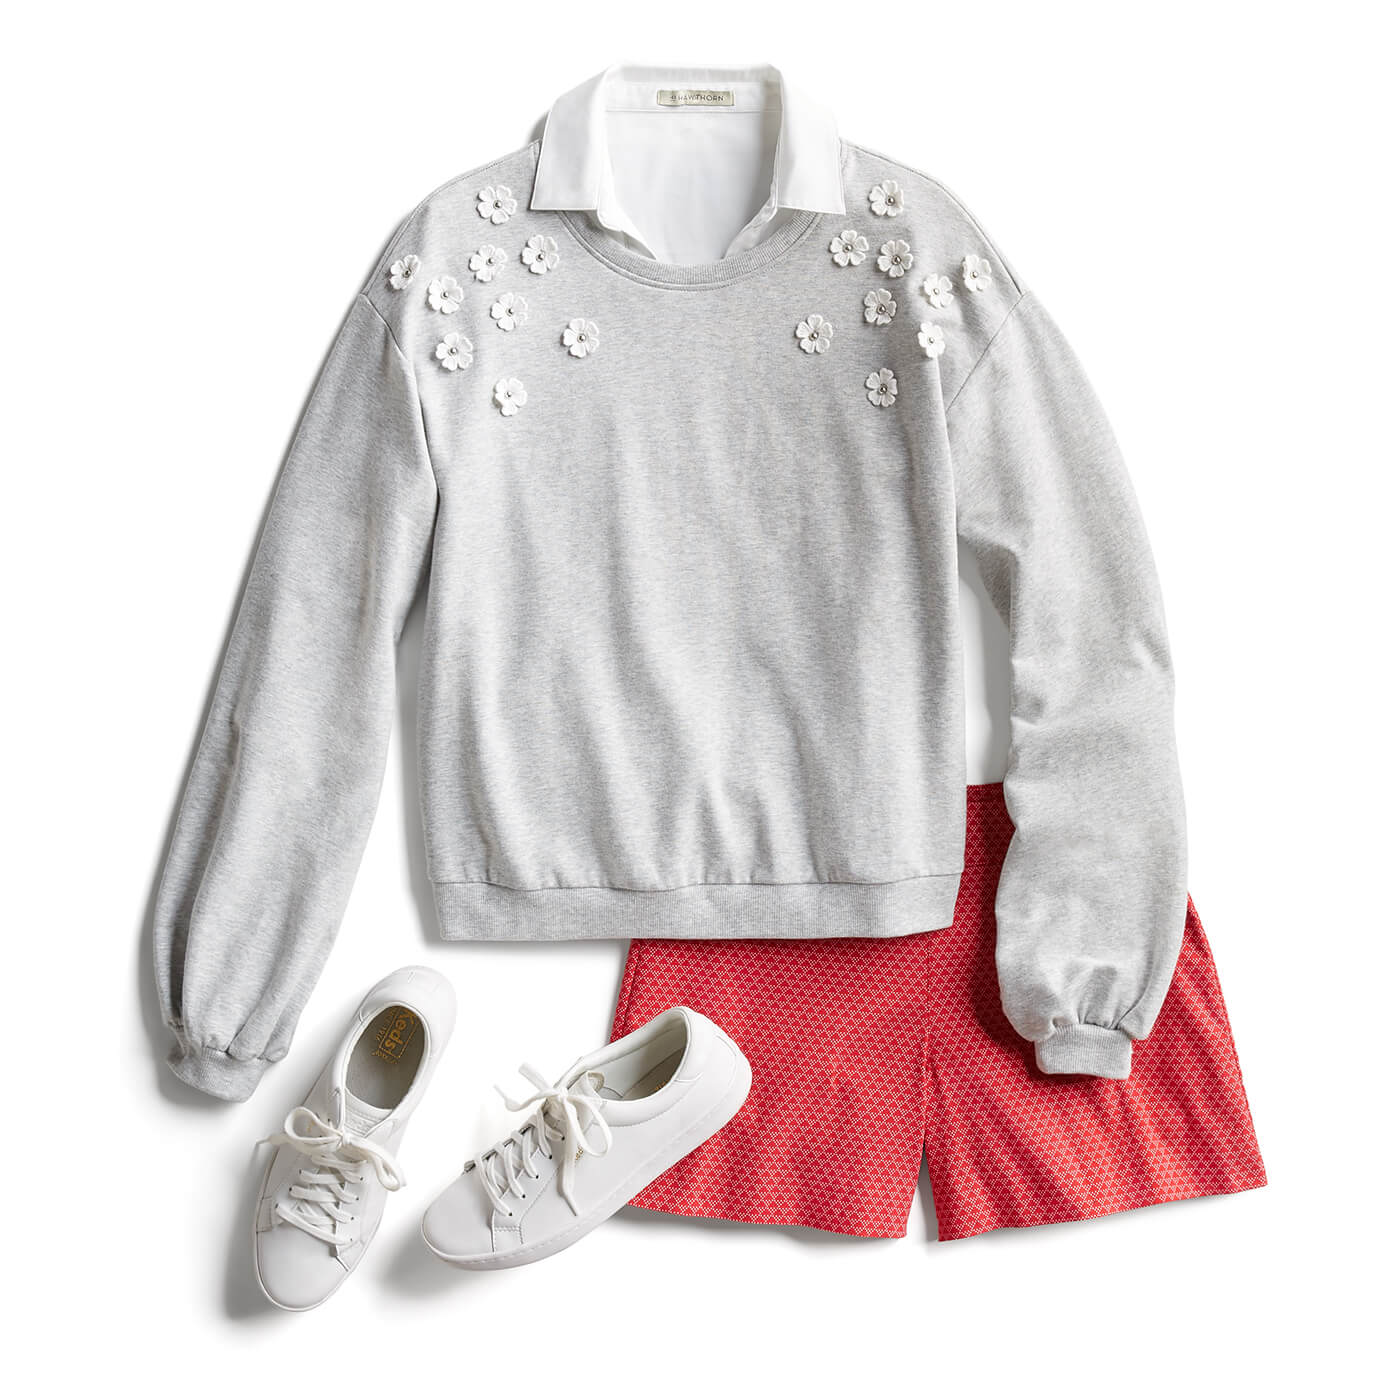 How to Add Color to Wardrobe